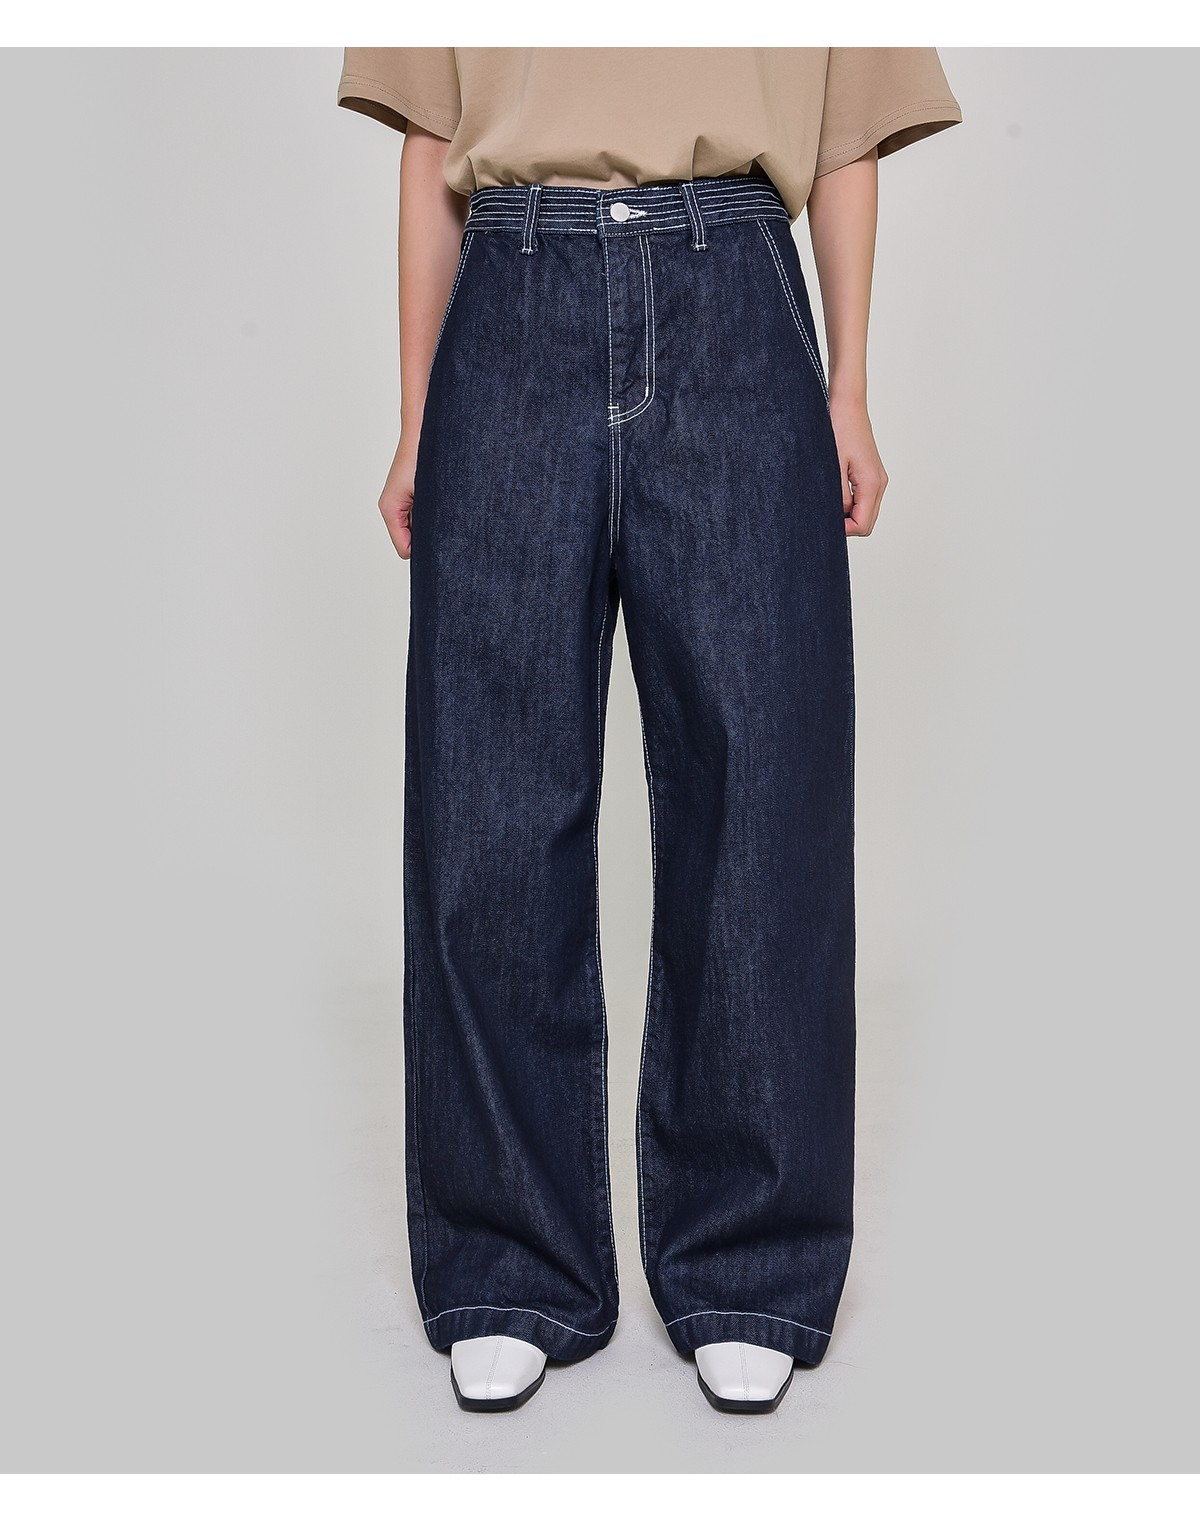 Rachel wide trousers